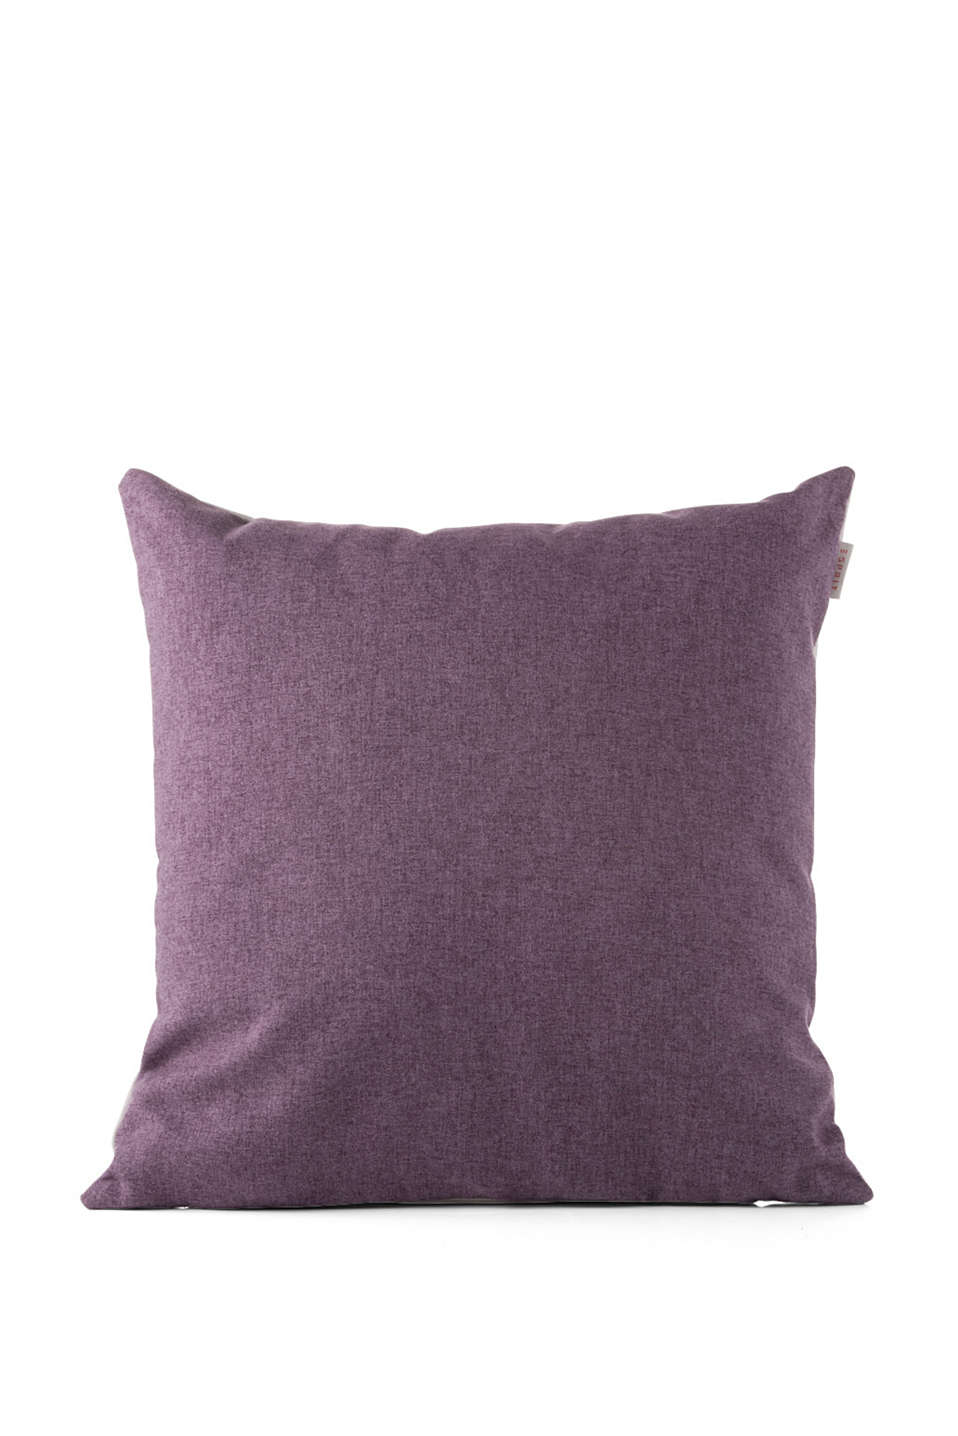 Esprit - Soft reversible cushion cover